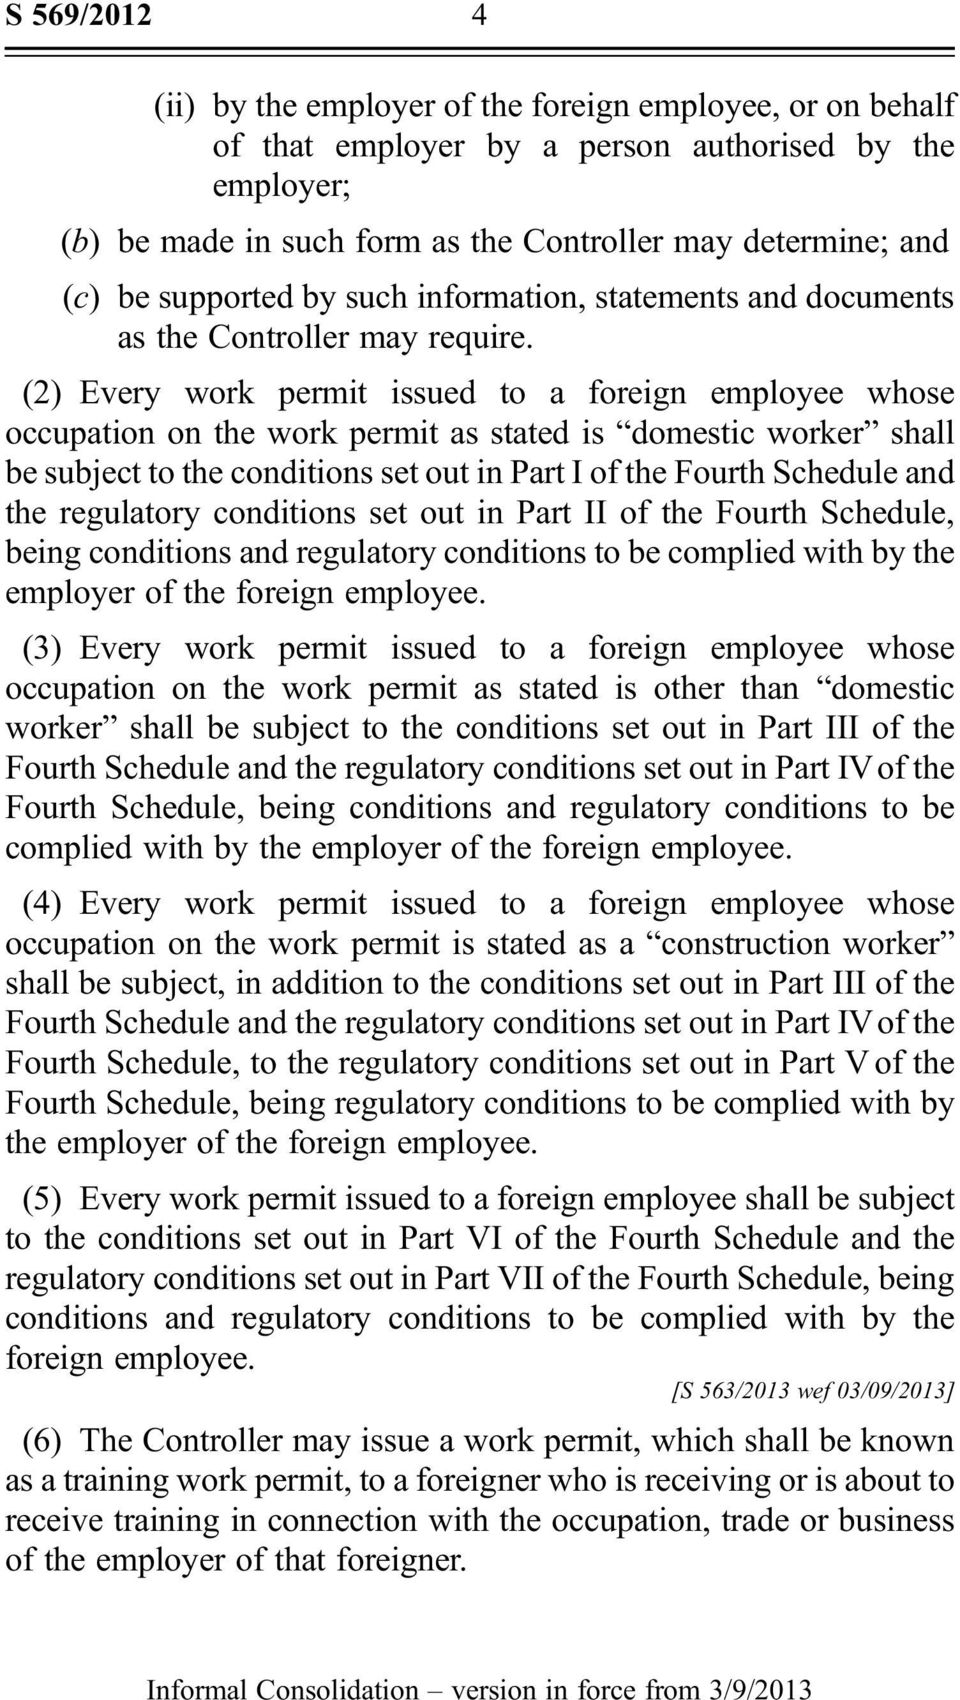 (2) Every work permit issued to a foreign employee whose occupation on the work permit as stated is domestic worker shall be subject to the conditions set out in Part I of the Fourth Schedule and the